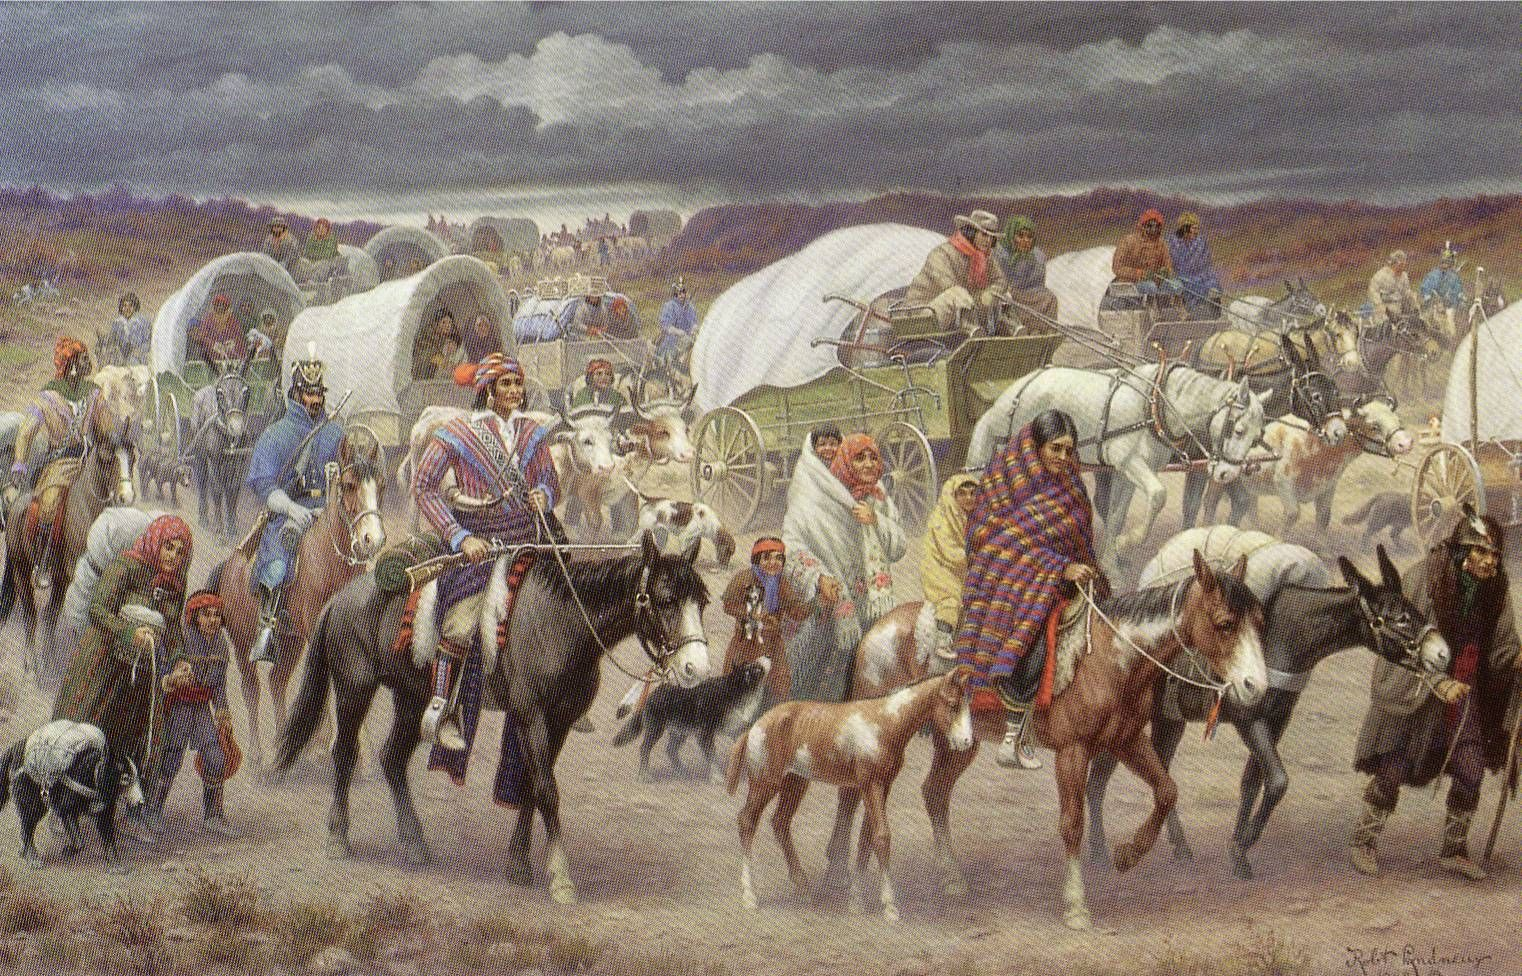 a study on cherokee removal in the united states The cherokee and the trail of tears - ncpedia                wwwncpediaorg/anchor/cherokee-and-trail-tears.